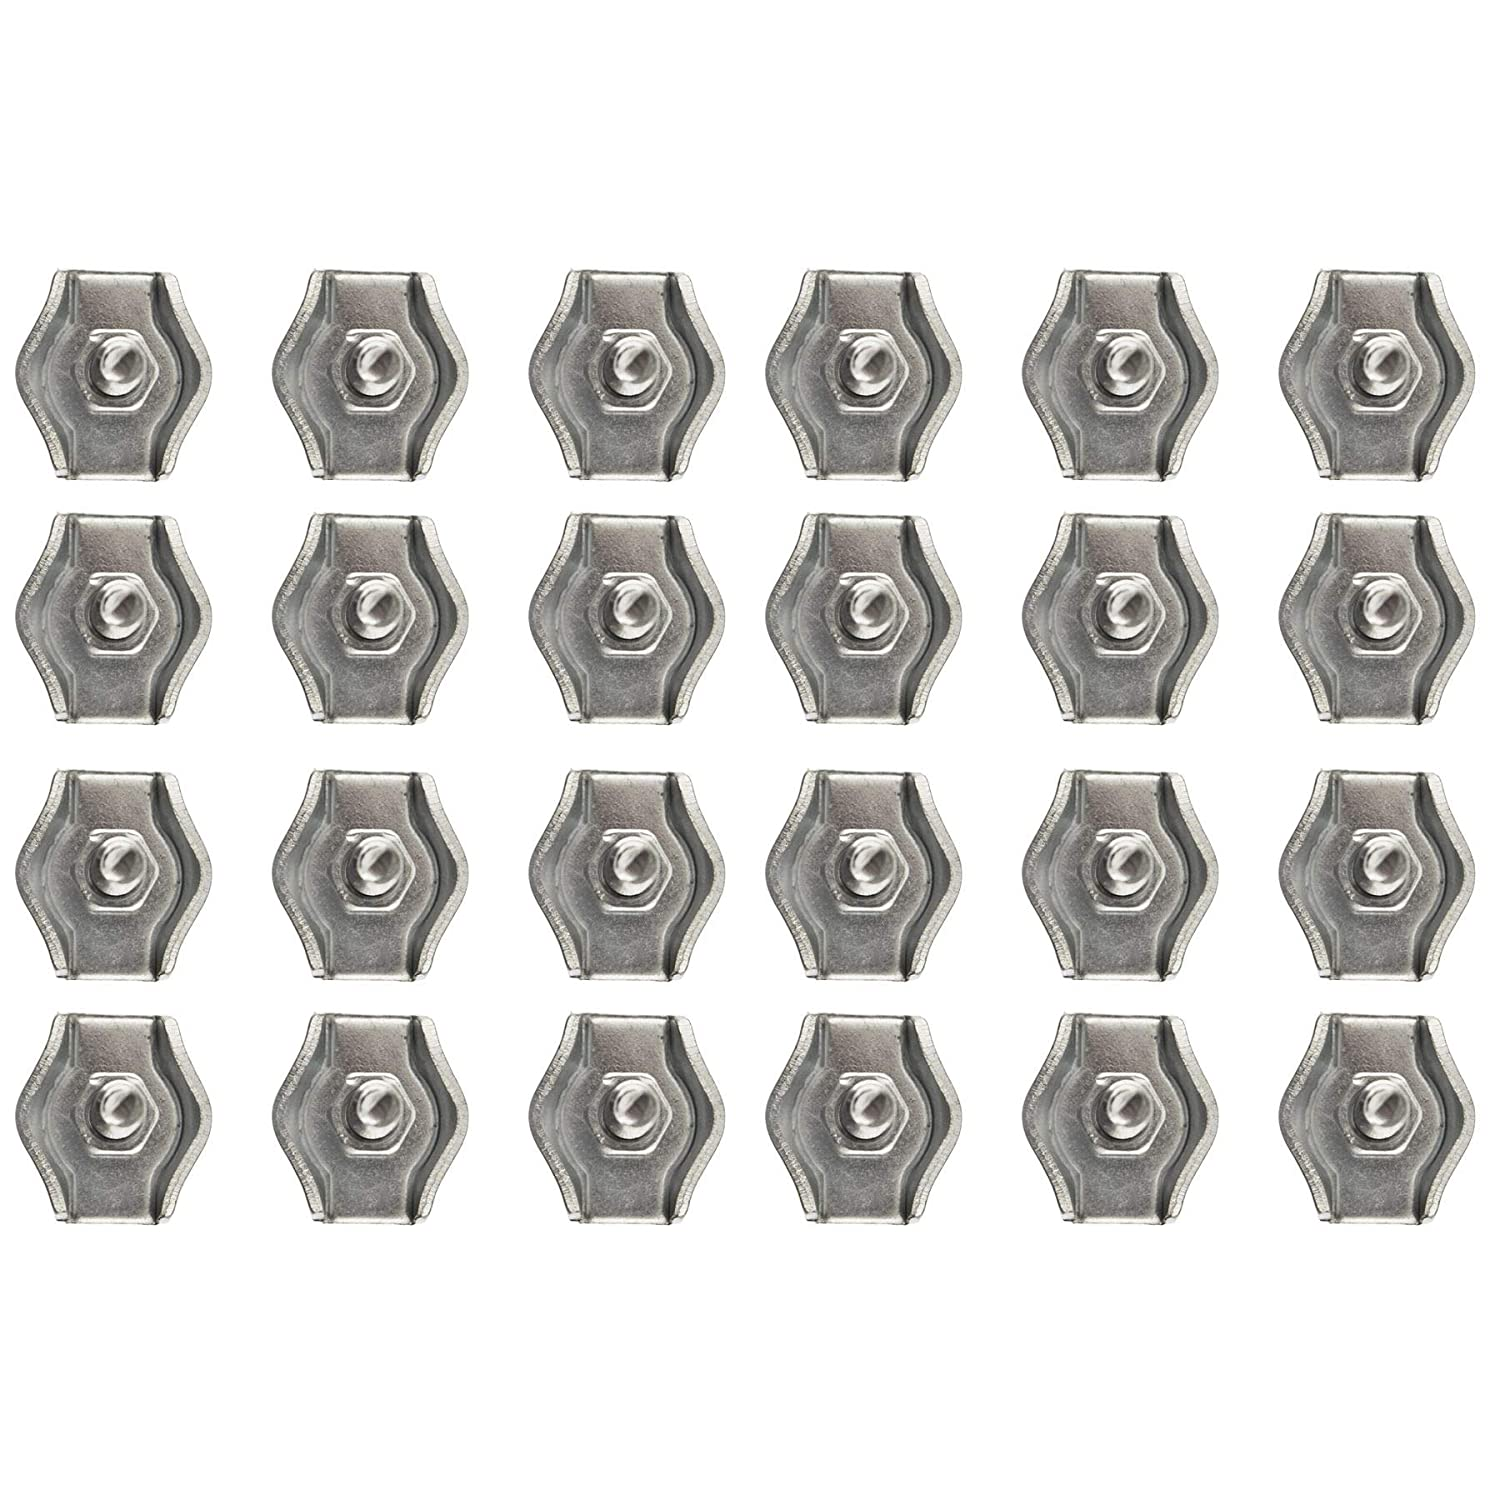 4mm Simplex Wire Rope//Cable Clamp Grips 10 Pack Zinc Plated